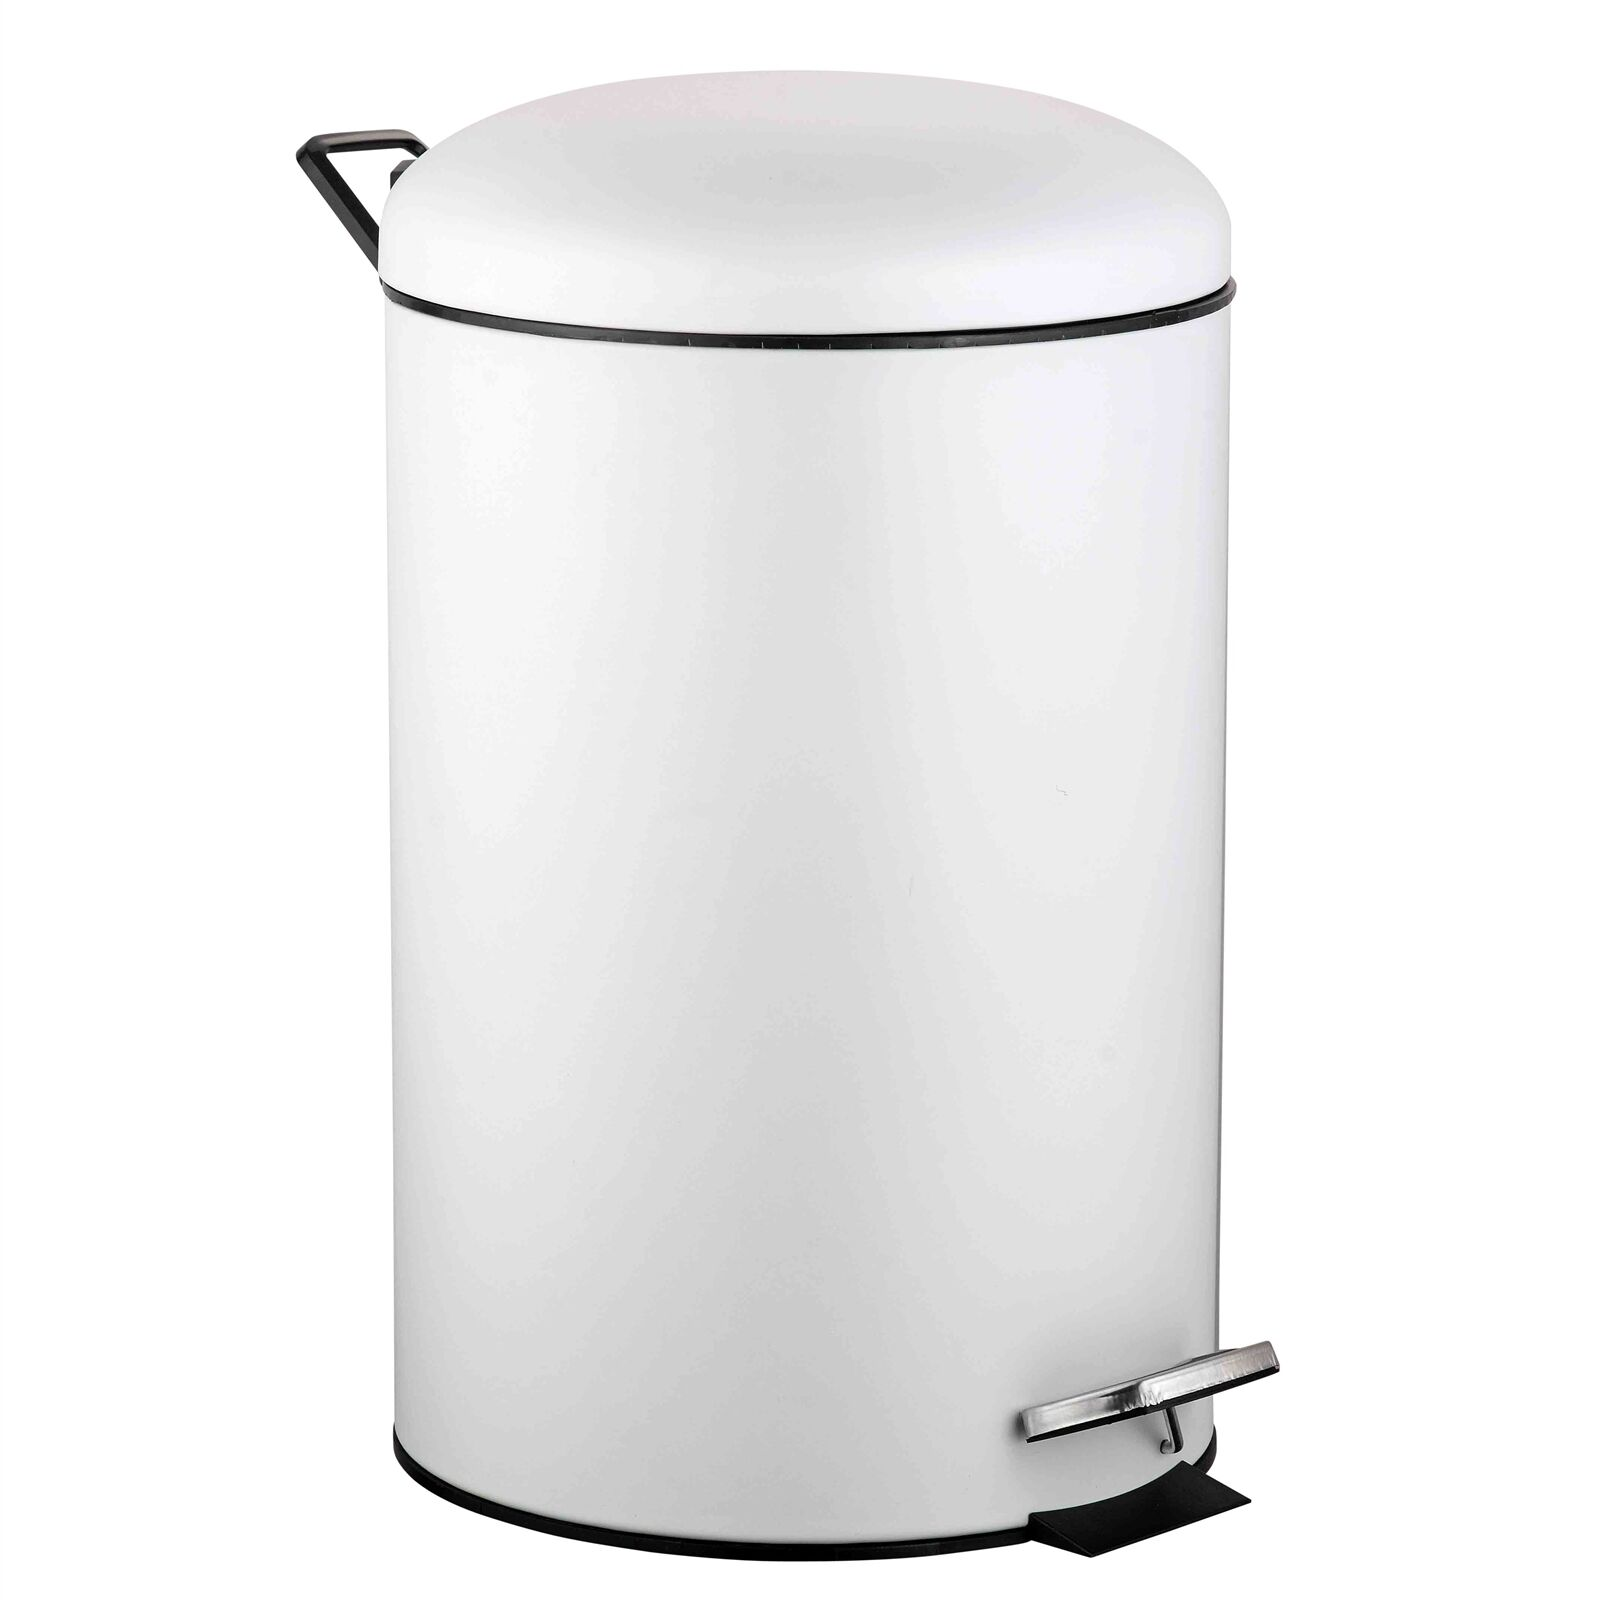 Morgan SMUDGE PROOF PEDAL BIN 20L Stainless Steel, Finger Print Proof Technology